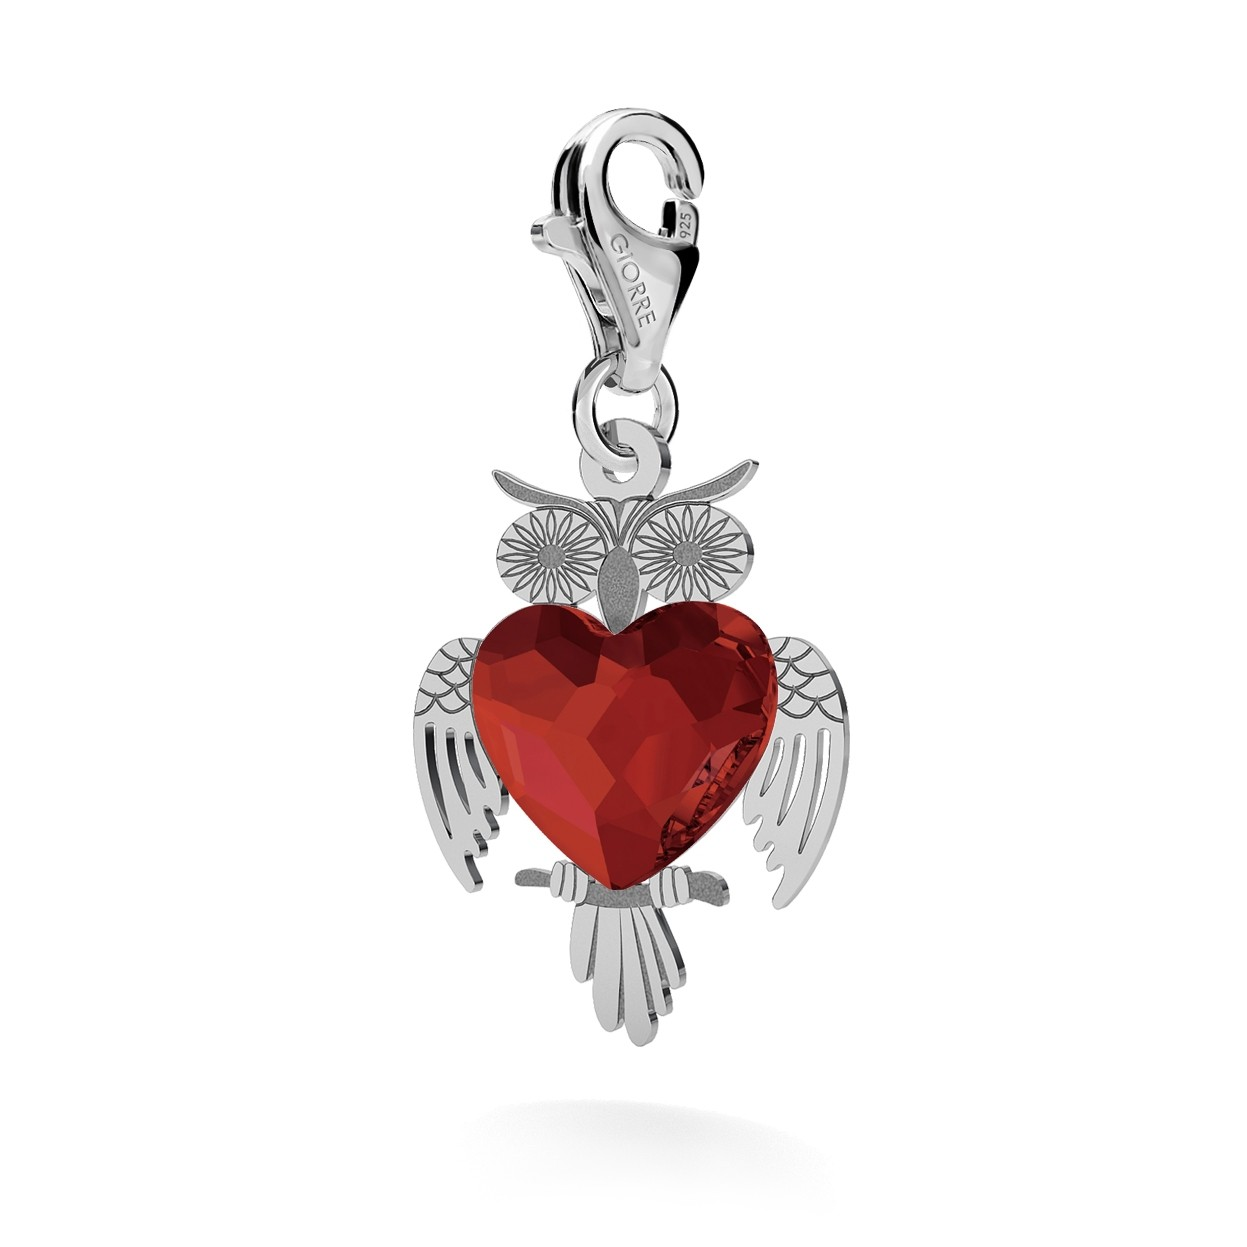 CHARM 122, SMALL OWL, SWAROVSKI 2808 MM 10, STERLING SILVER (925) RHODIUM OR GOLD PLATE